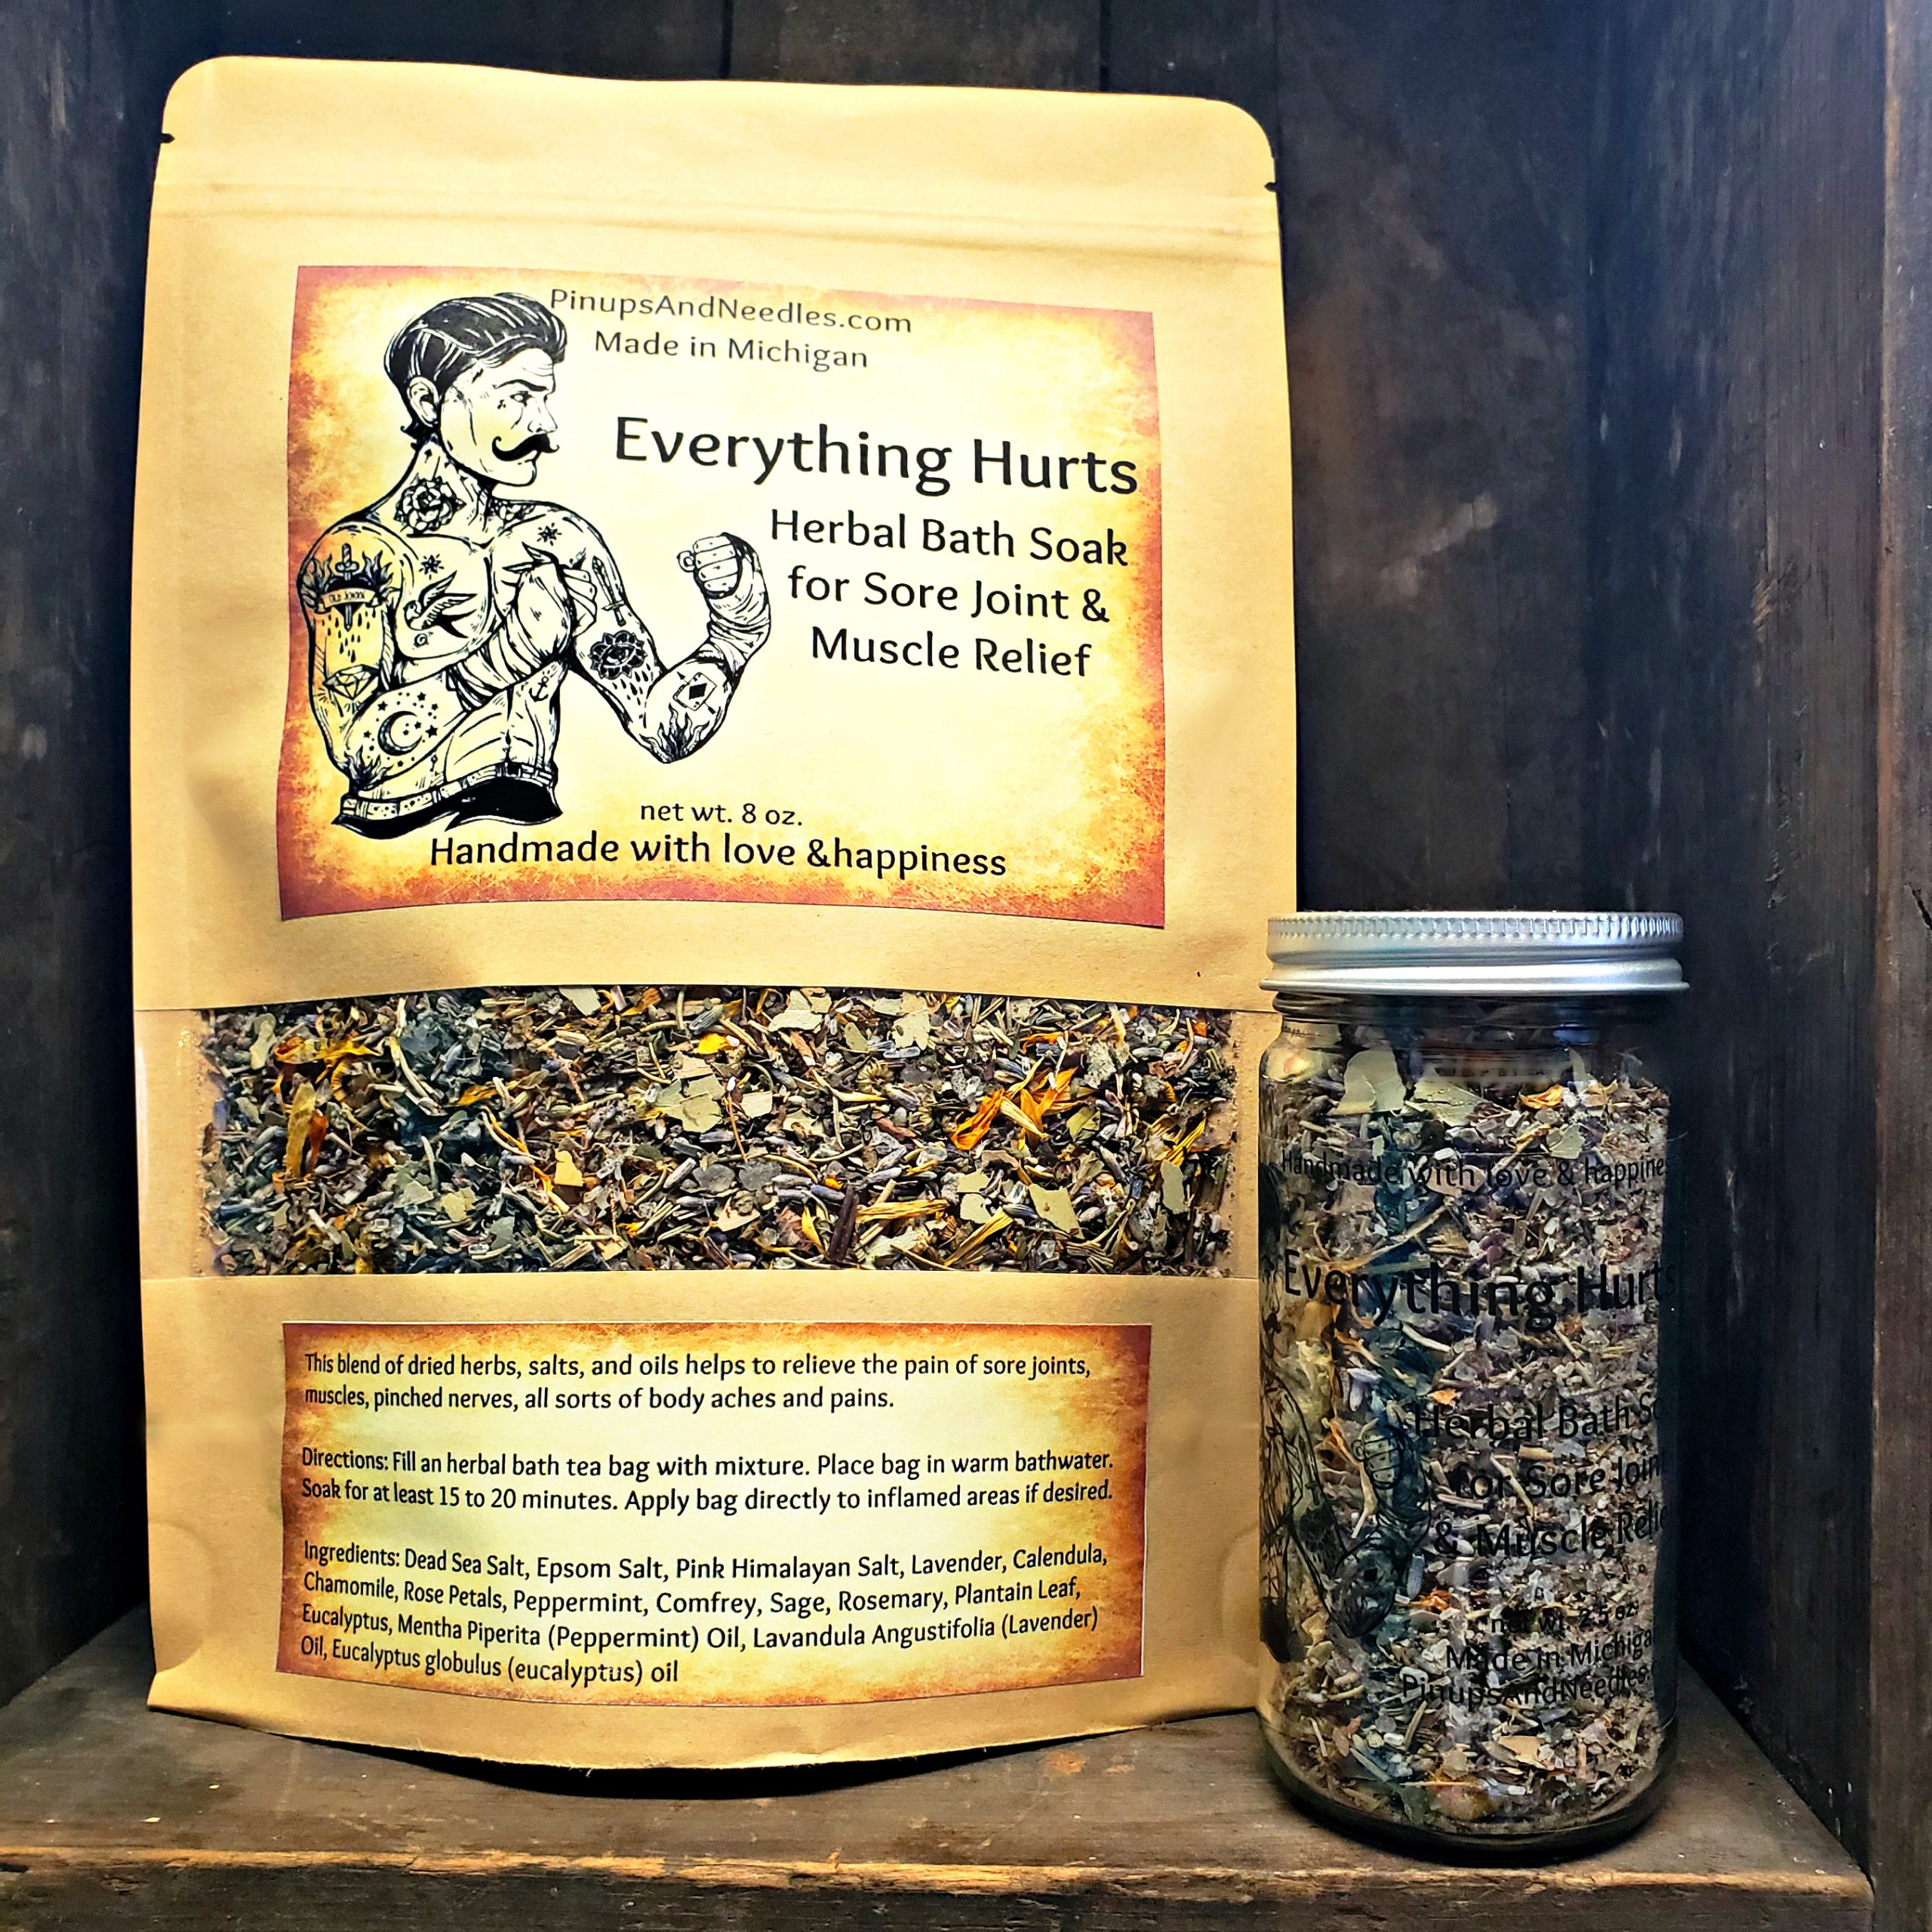 Everything Hurts Herbal Bath Soak for Sore Joint & Muscle Relief